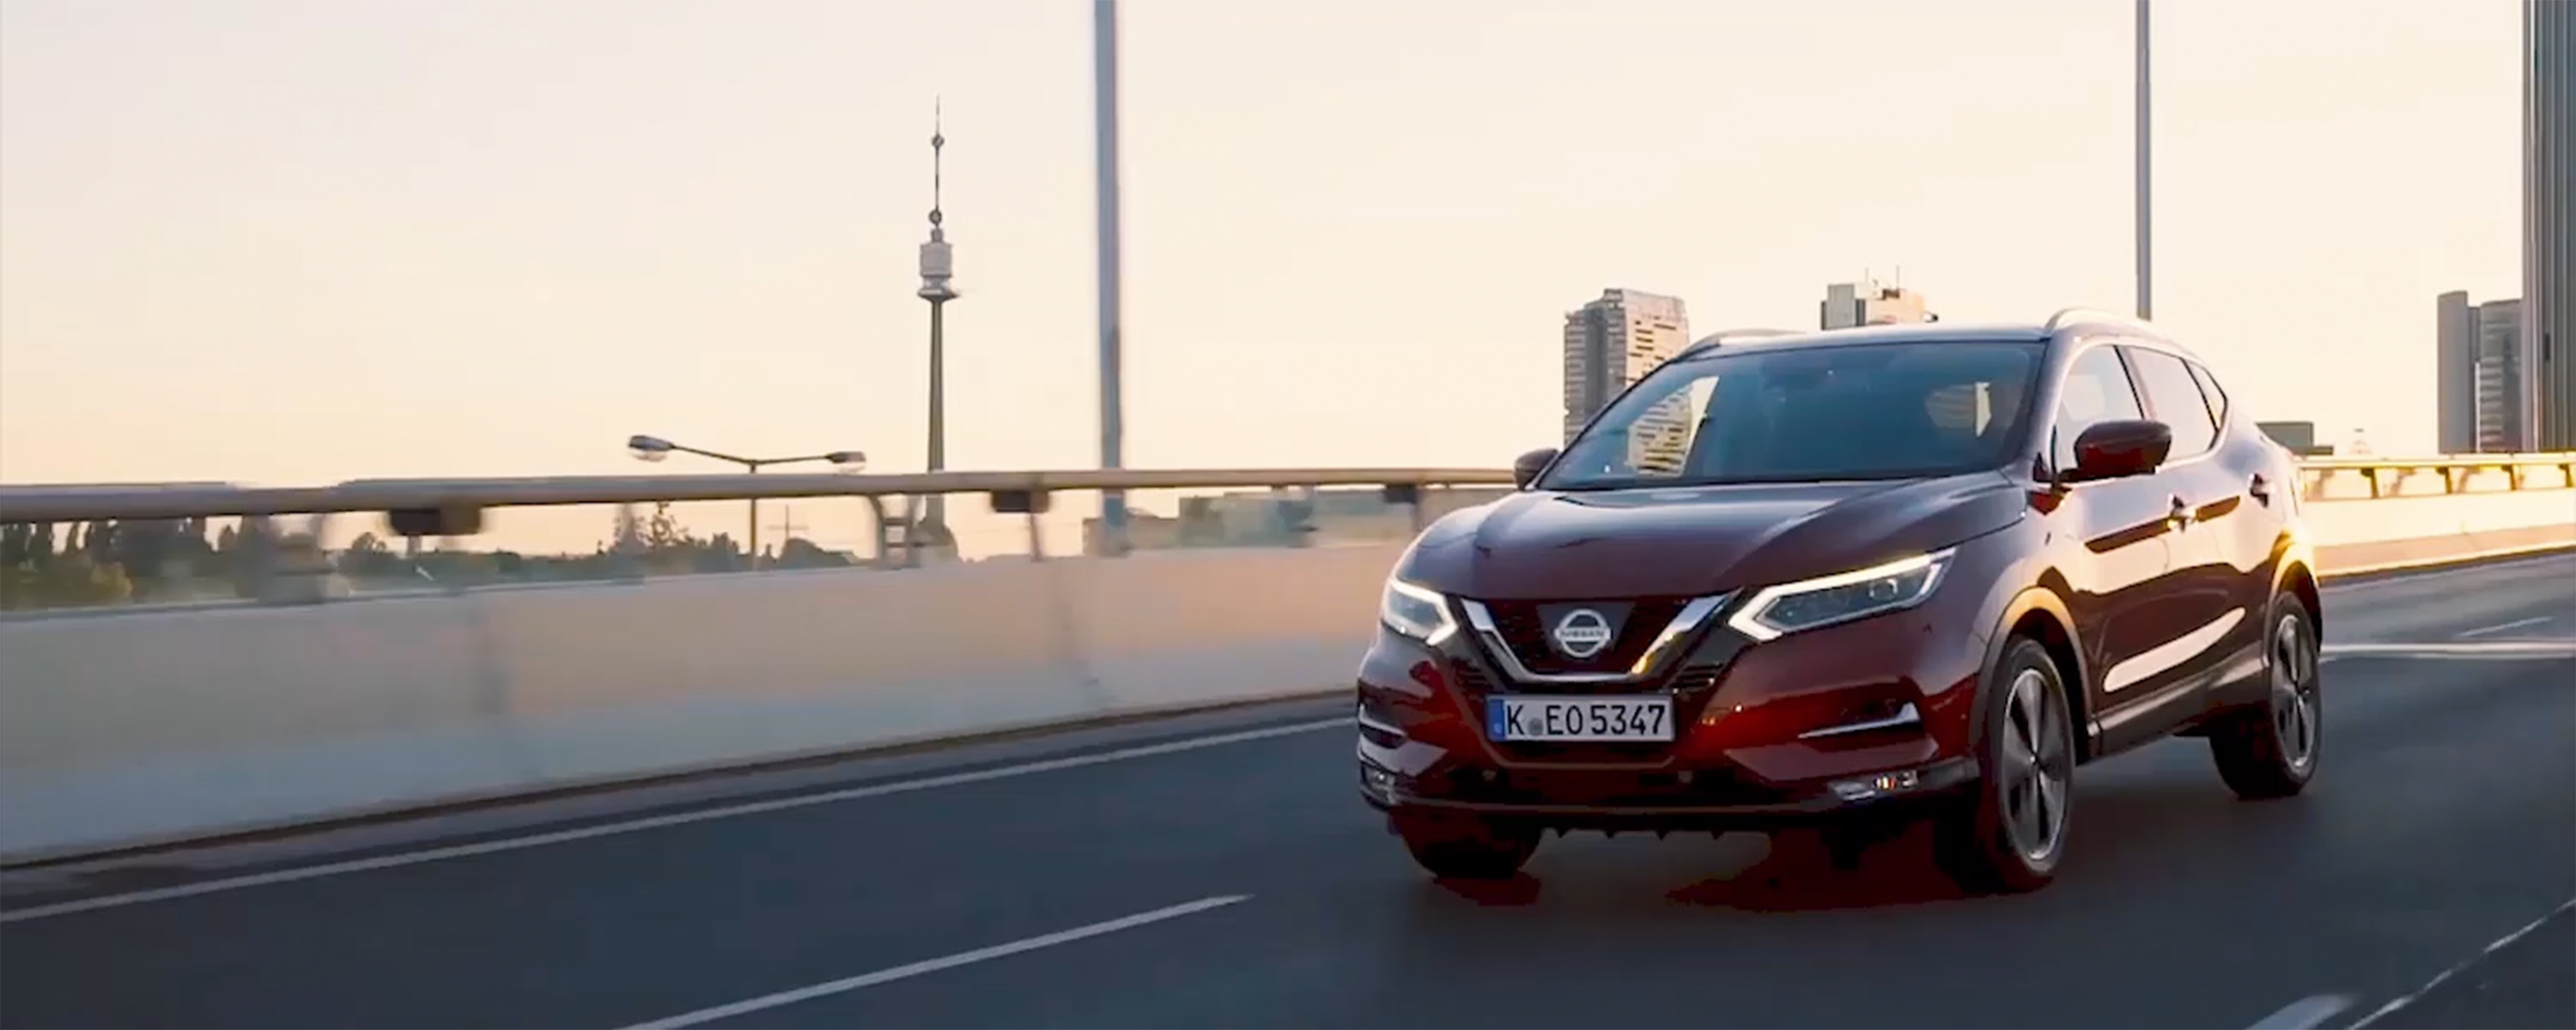 Nissan Qashqai driving in the city preview image